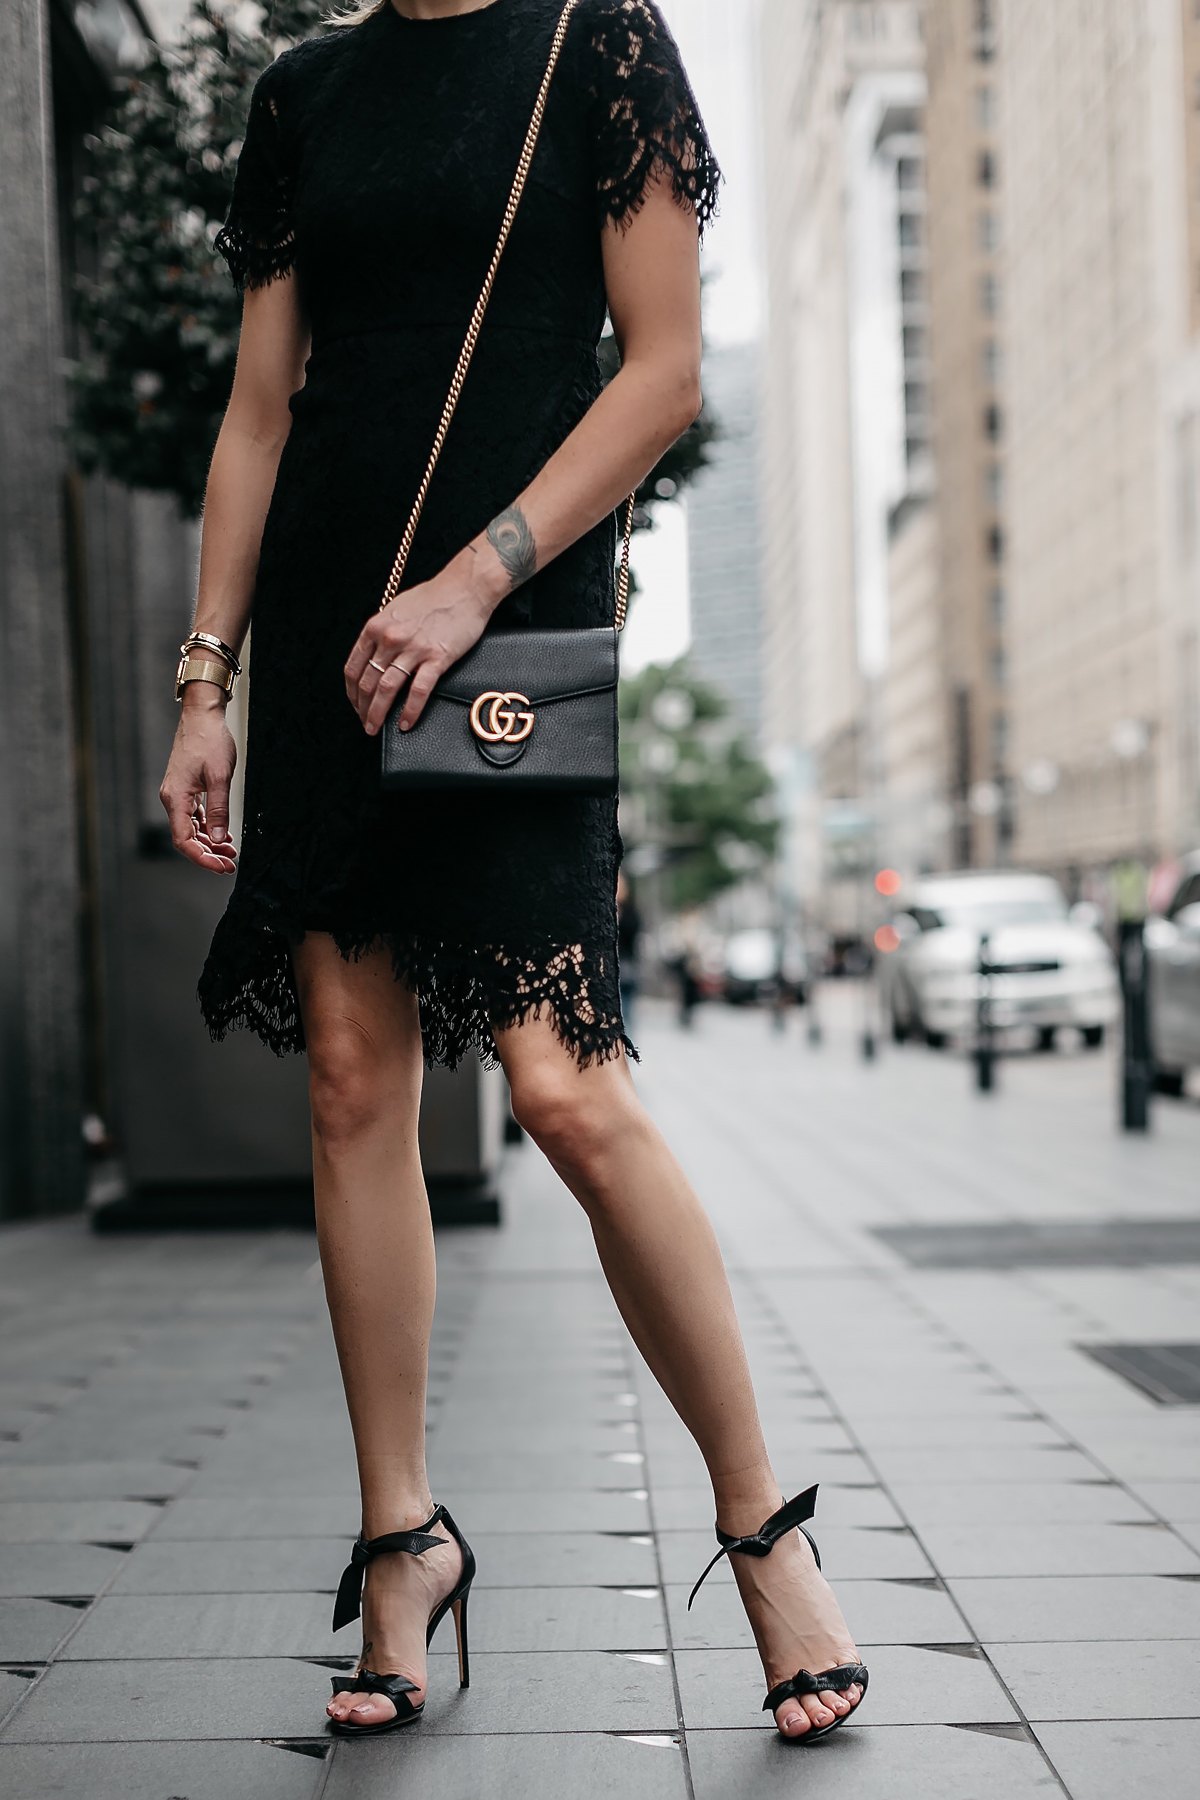 Woman Wearing Black Lace Dress Alexandre Birman Black Tie Bow Heeled Sandals Fashion Jackson Dallas Blogger Fashion Blogger Street Style